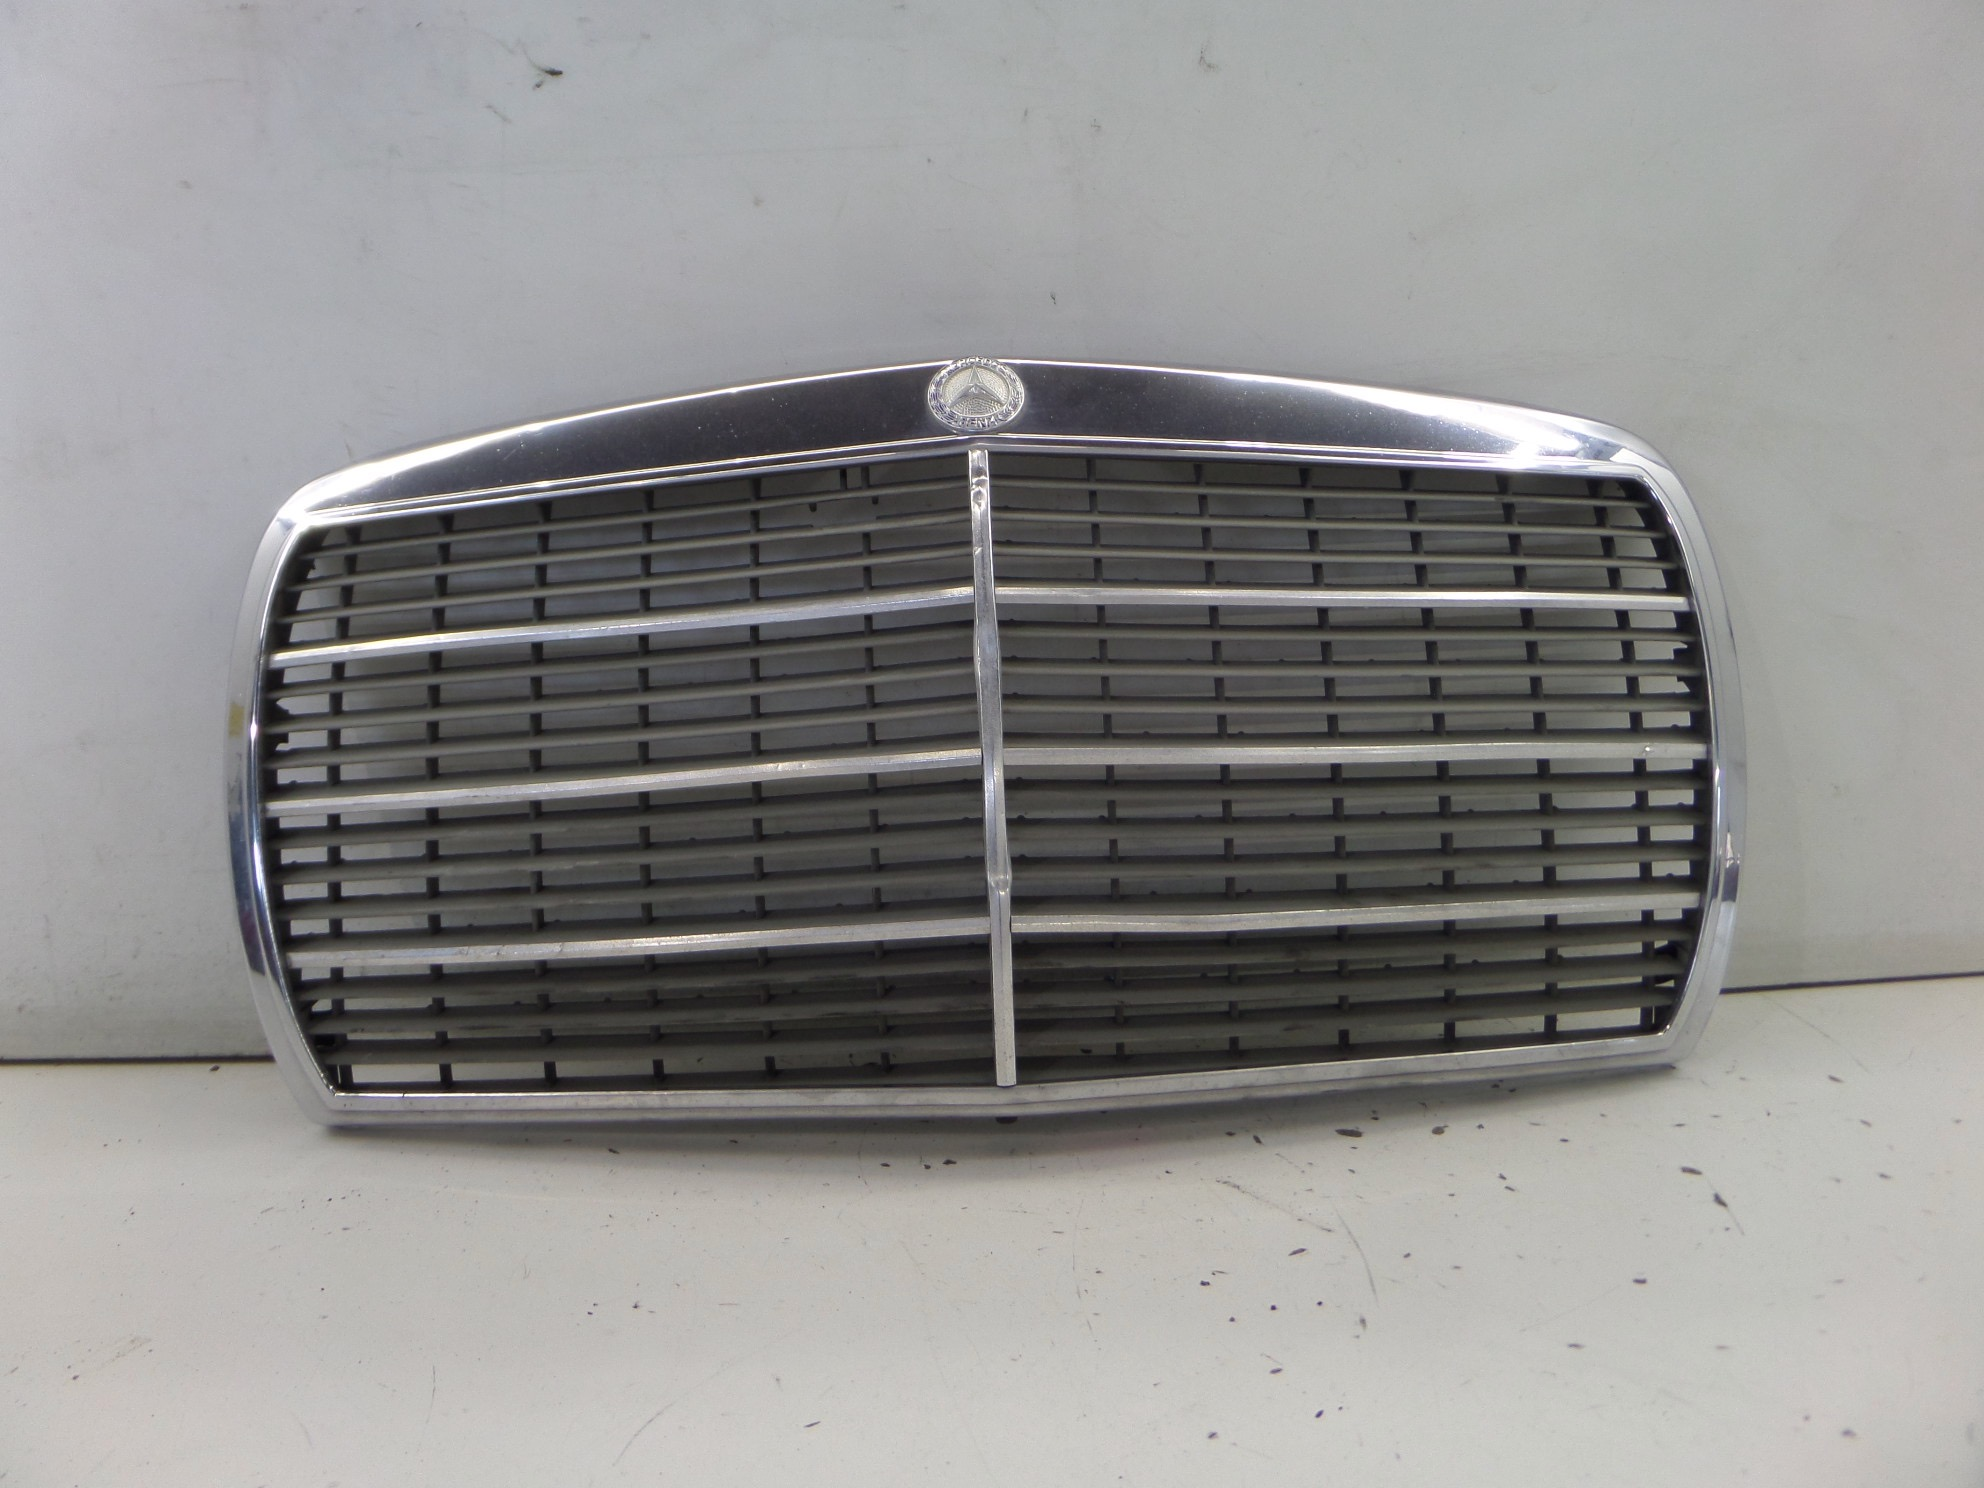 FRONT GRILL GRILLE FOR MERCEDES W123 123